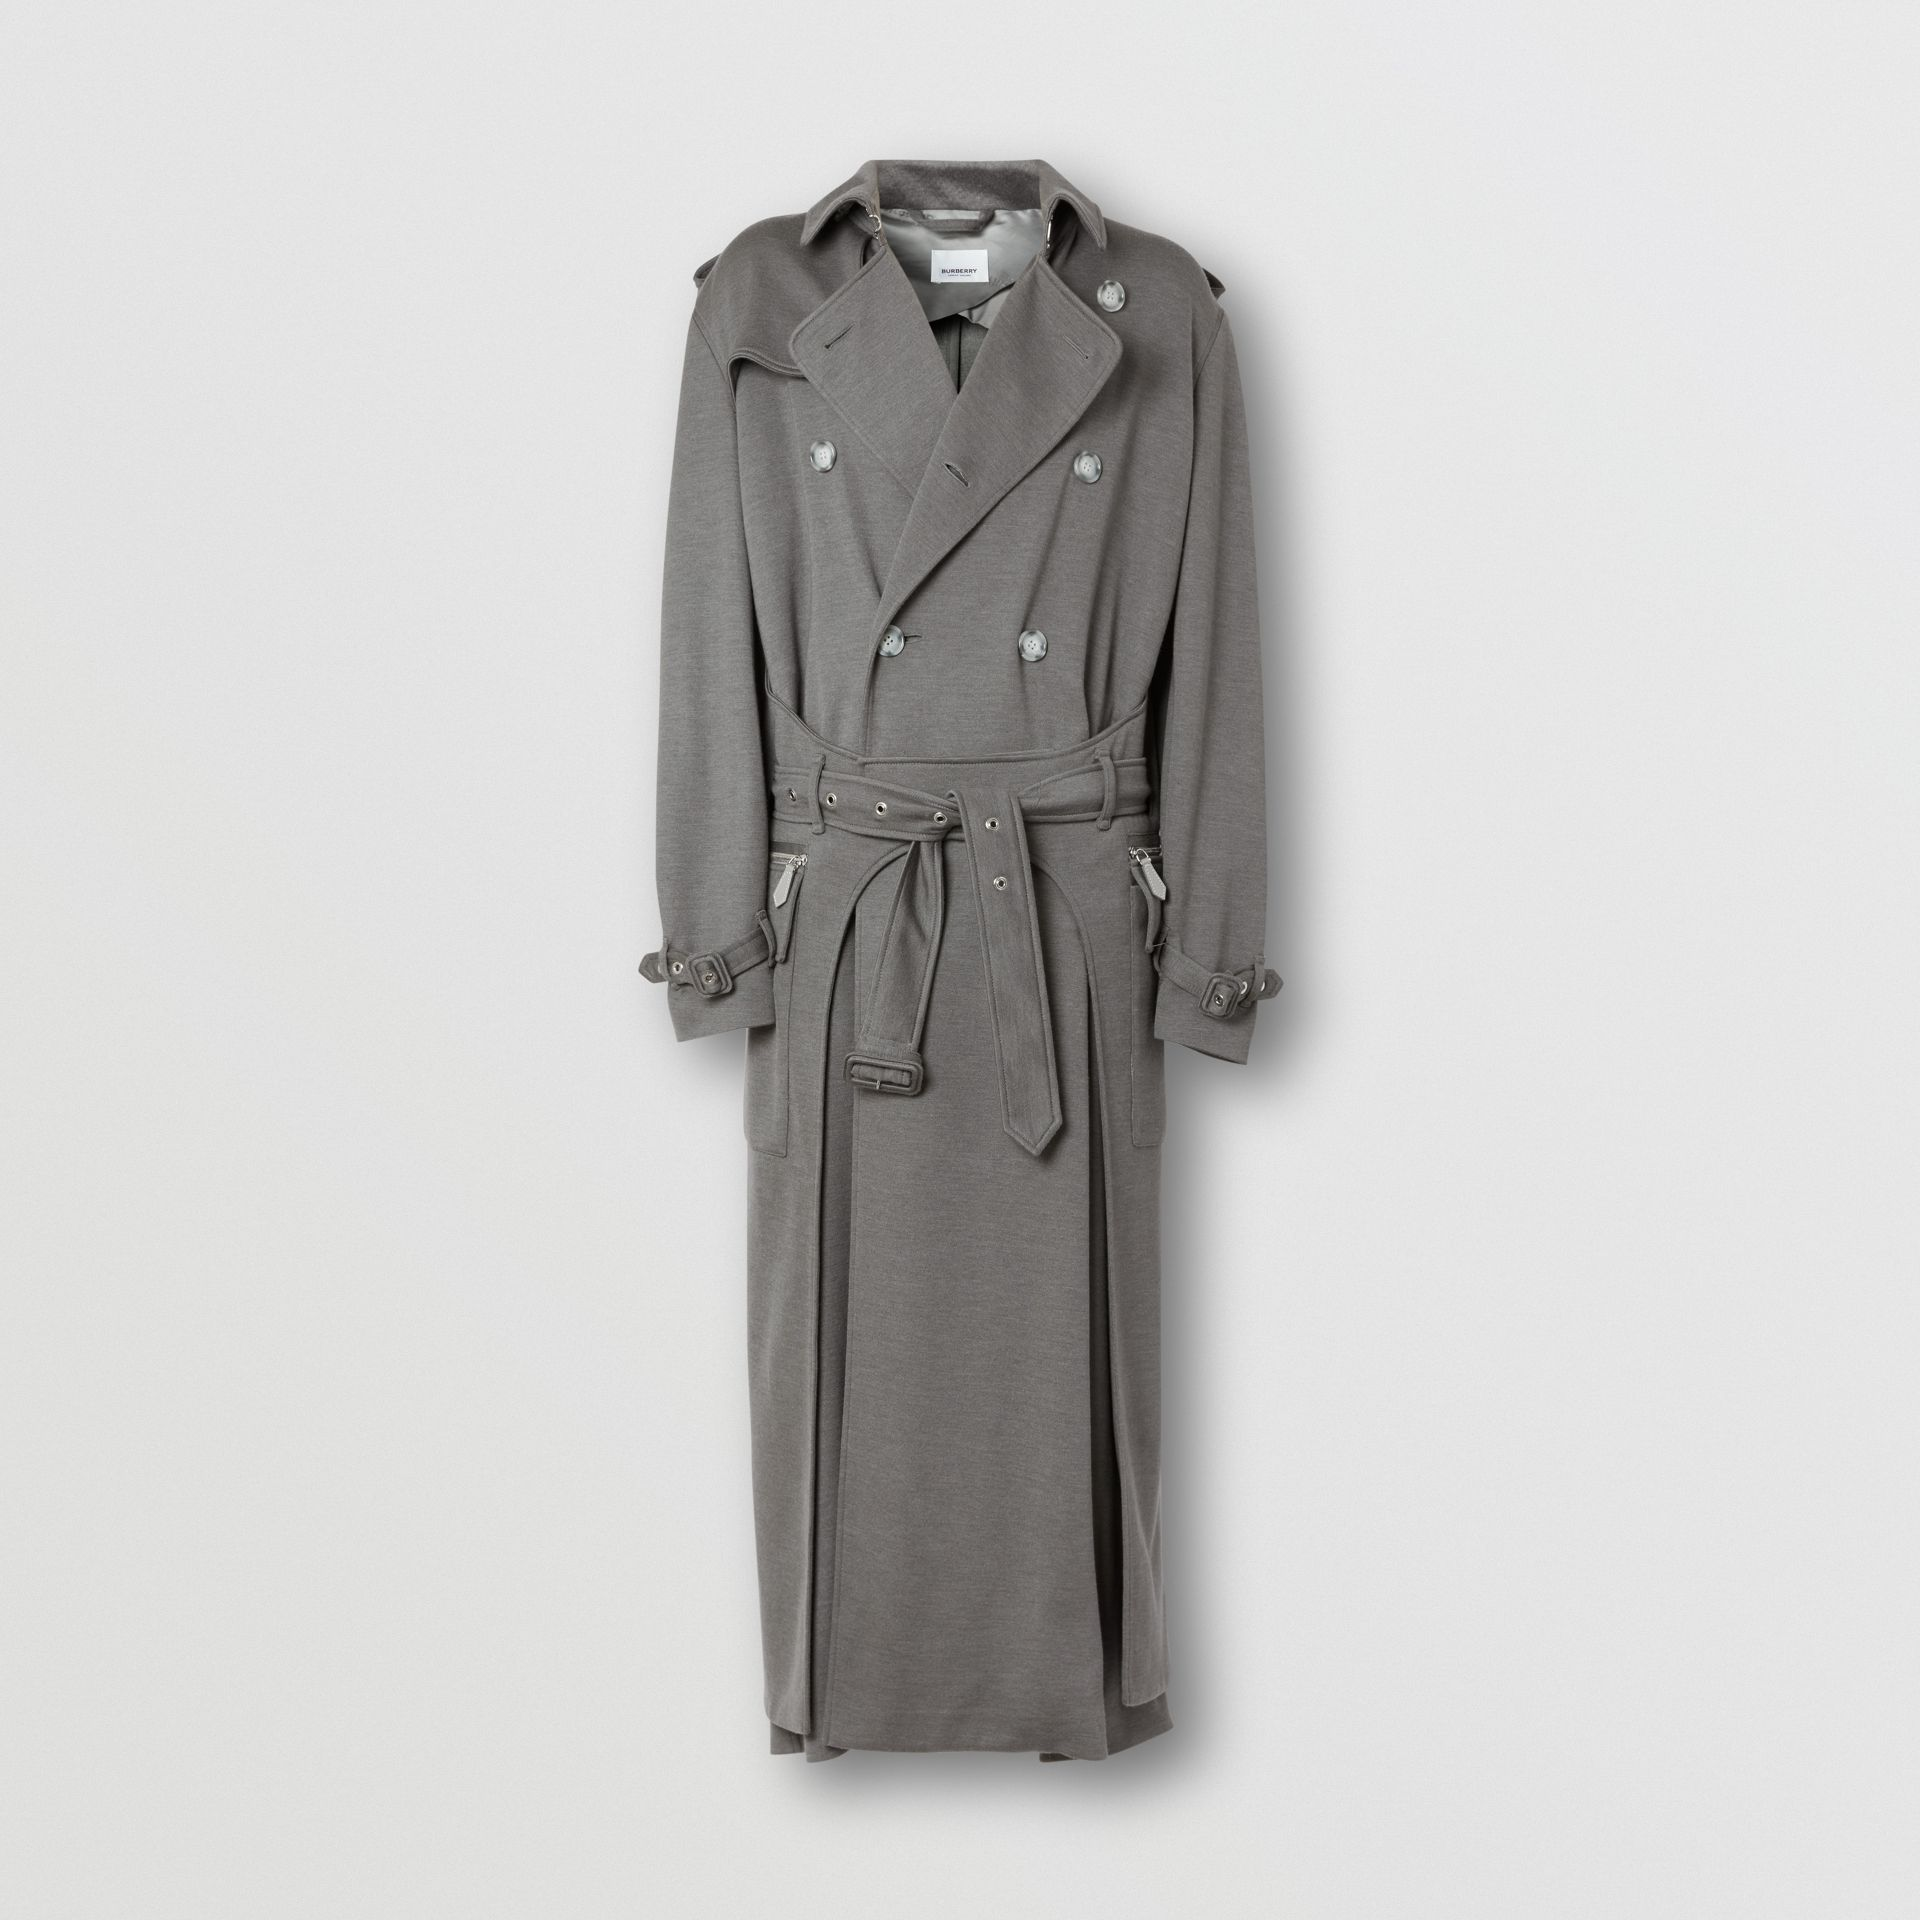 Cargo Pocket Detail Cashmere Silk Trench Coat in Cloud Grey - Men | Burberry - gallery image 3